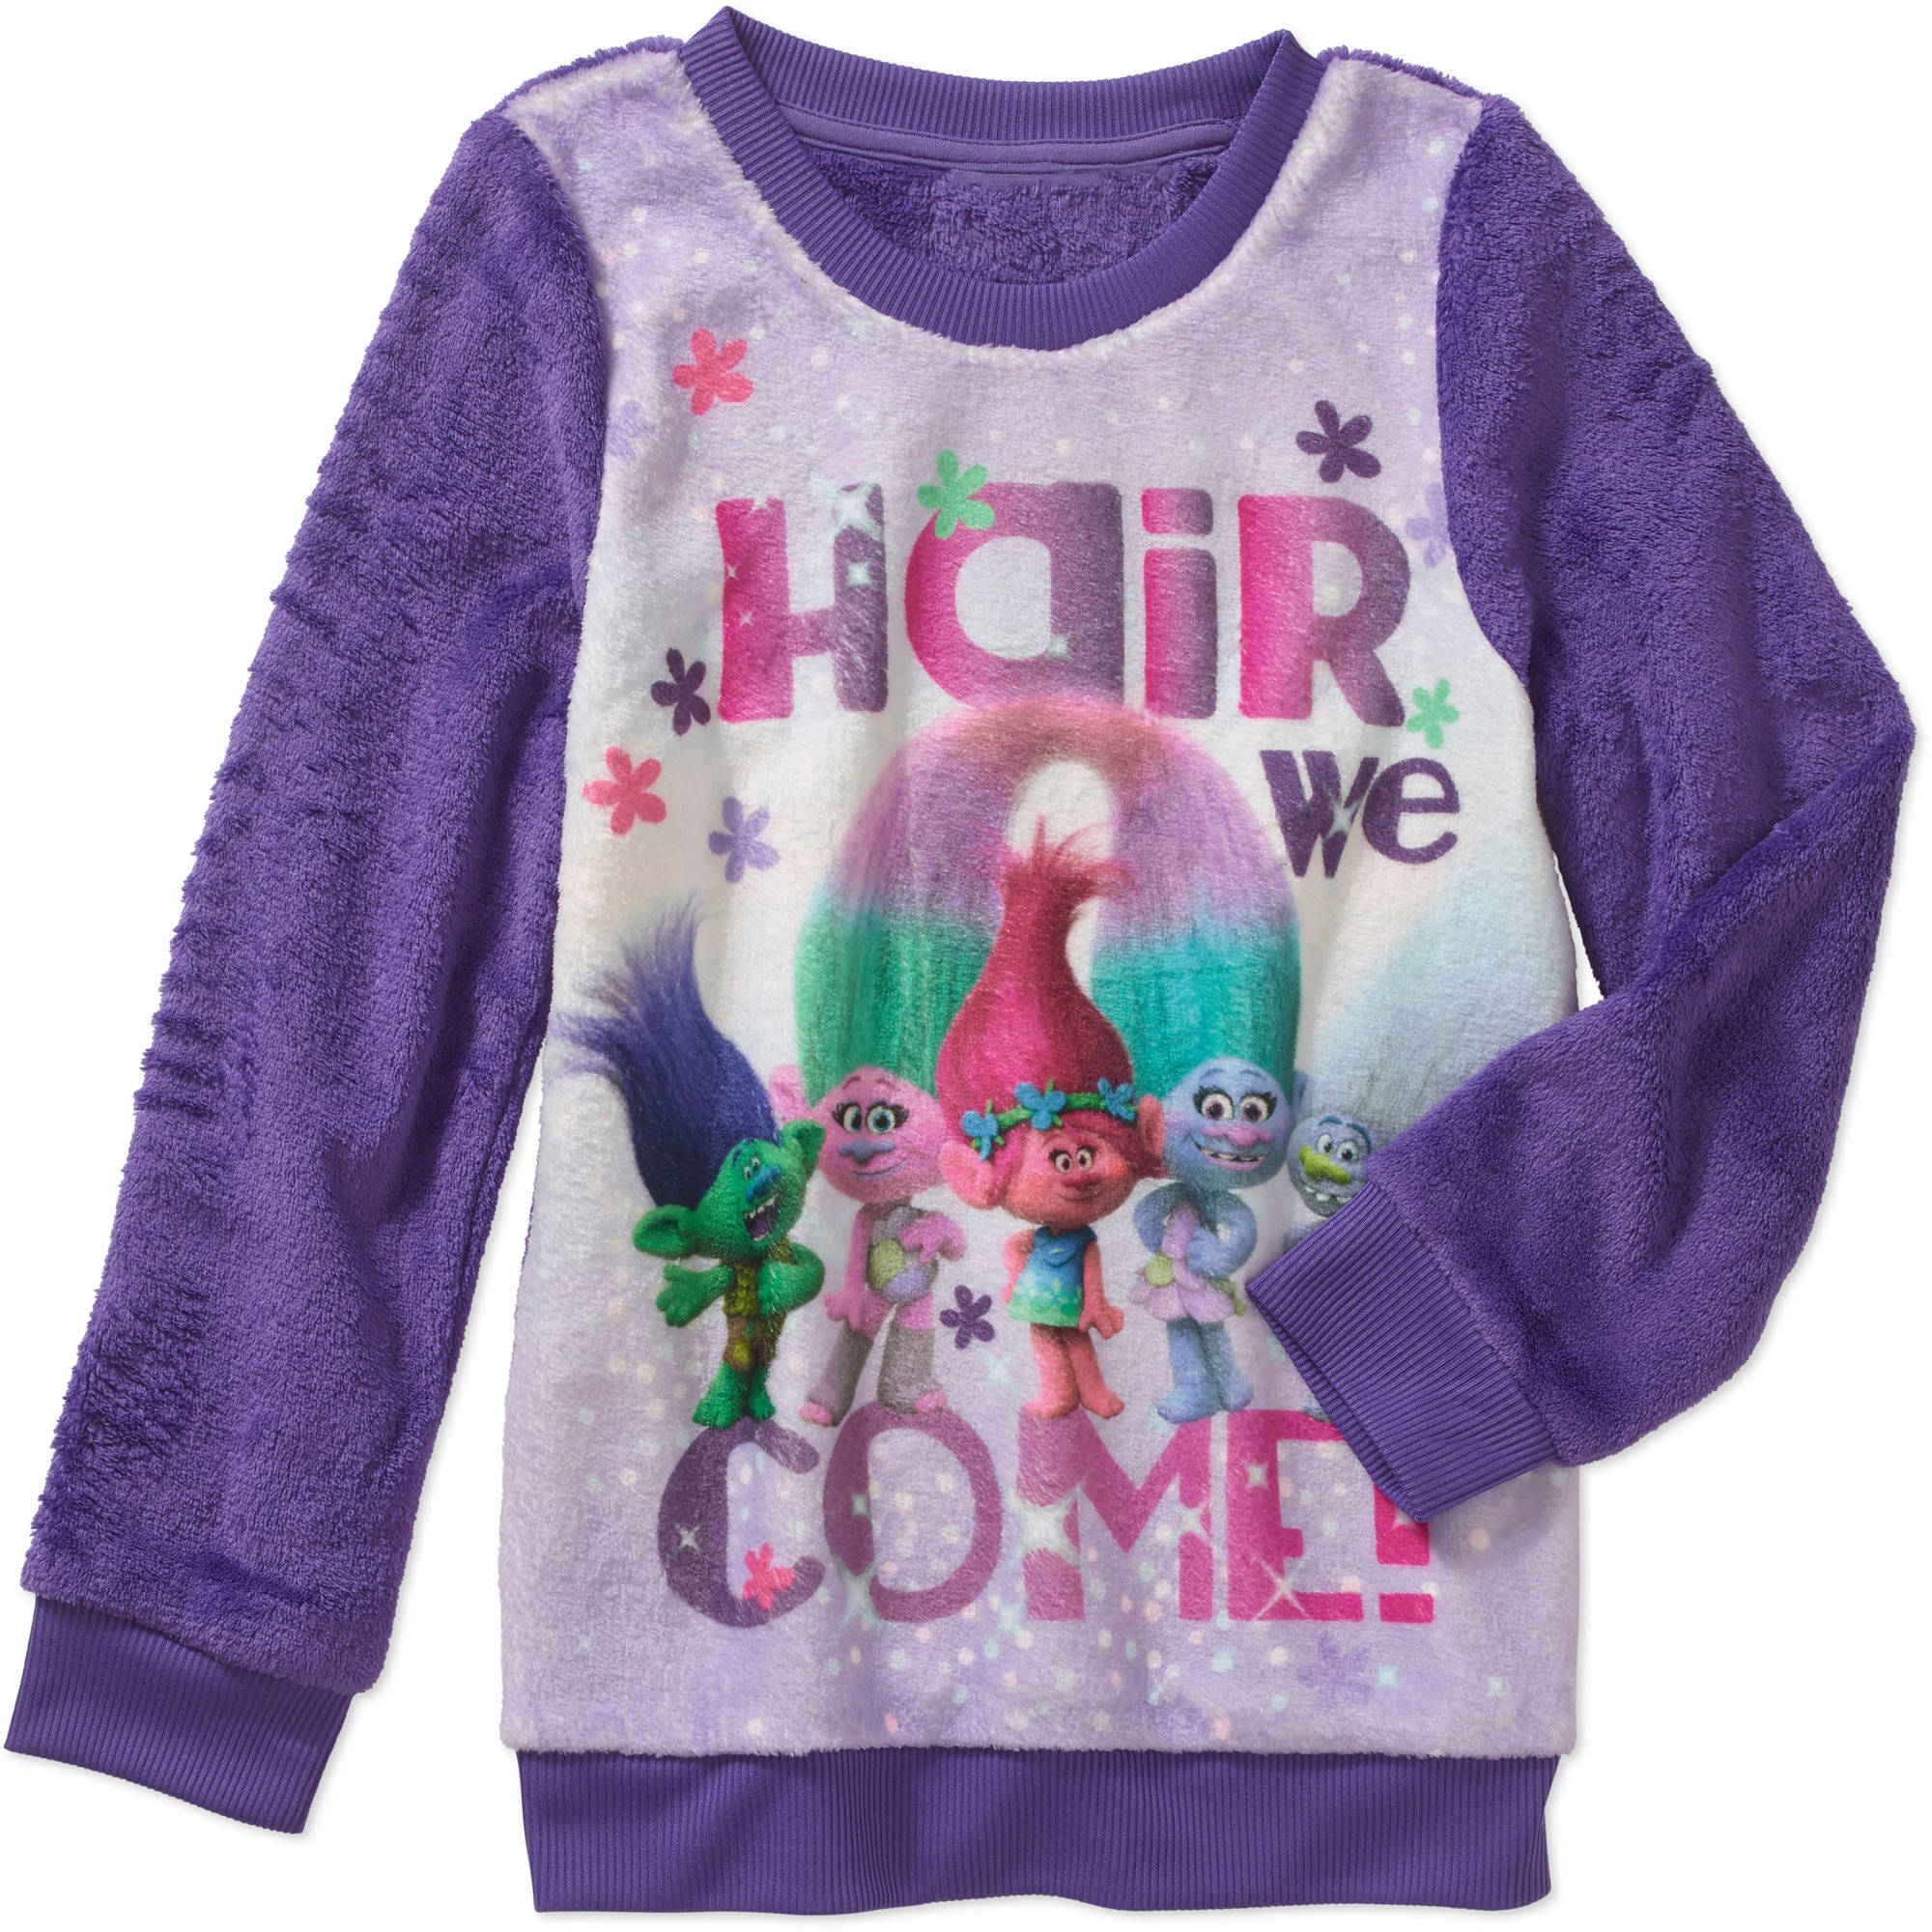 Trolls Girls' Hair we come Minky Sweatshirt